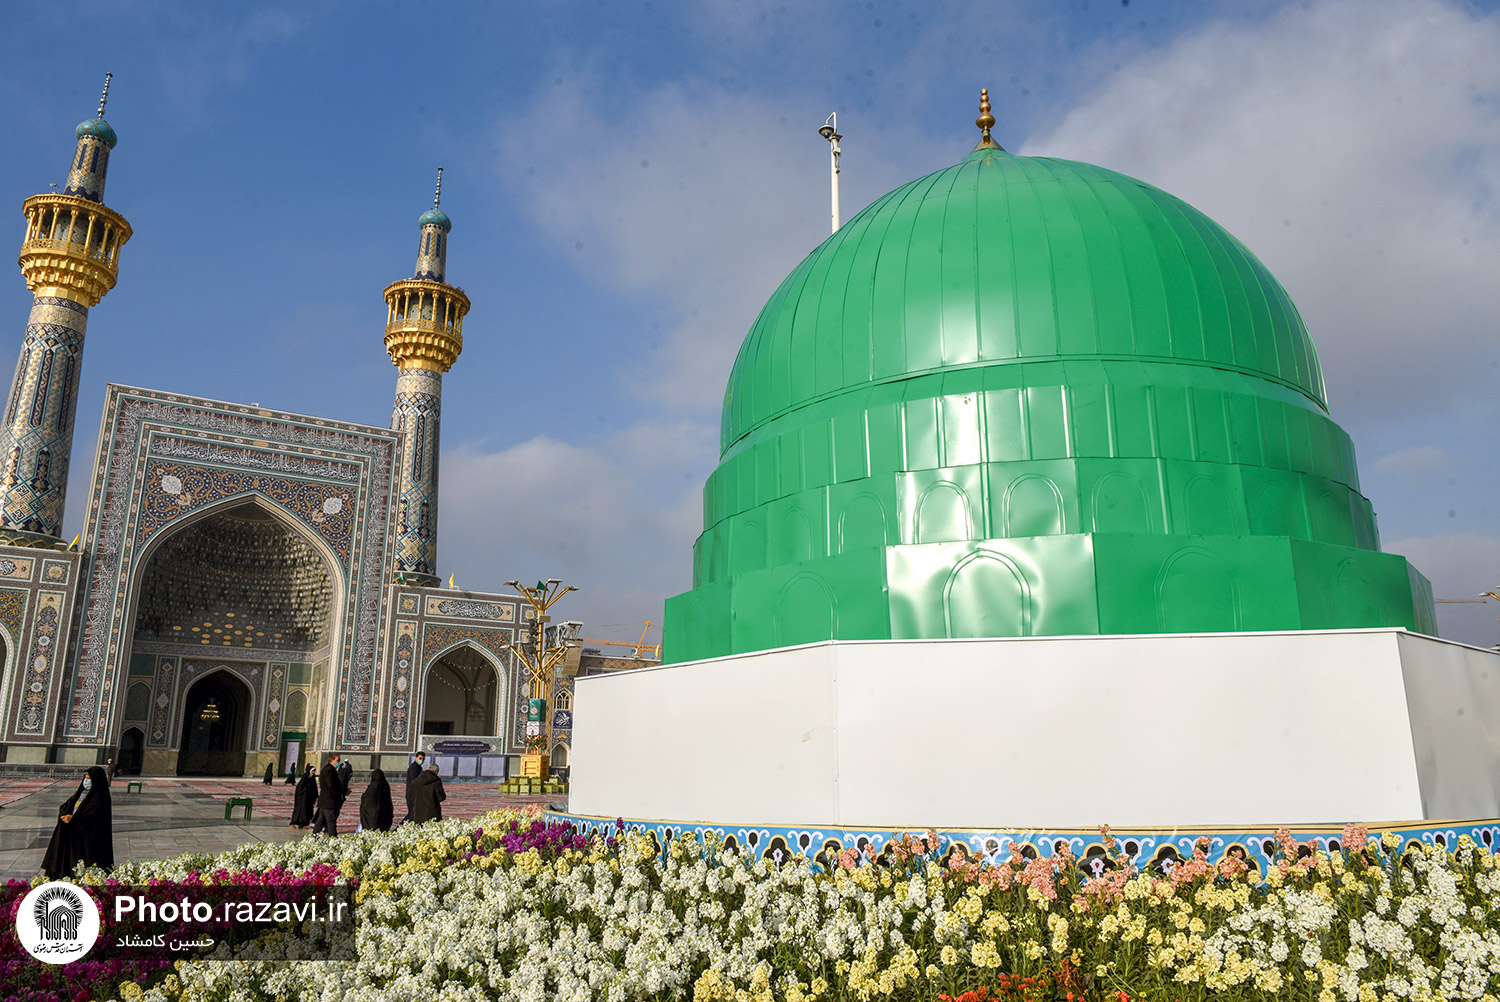 The green dome of the courtyard of the Great Prophet (pbuh) in the holy shrine of Imam Reza (AS)